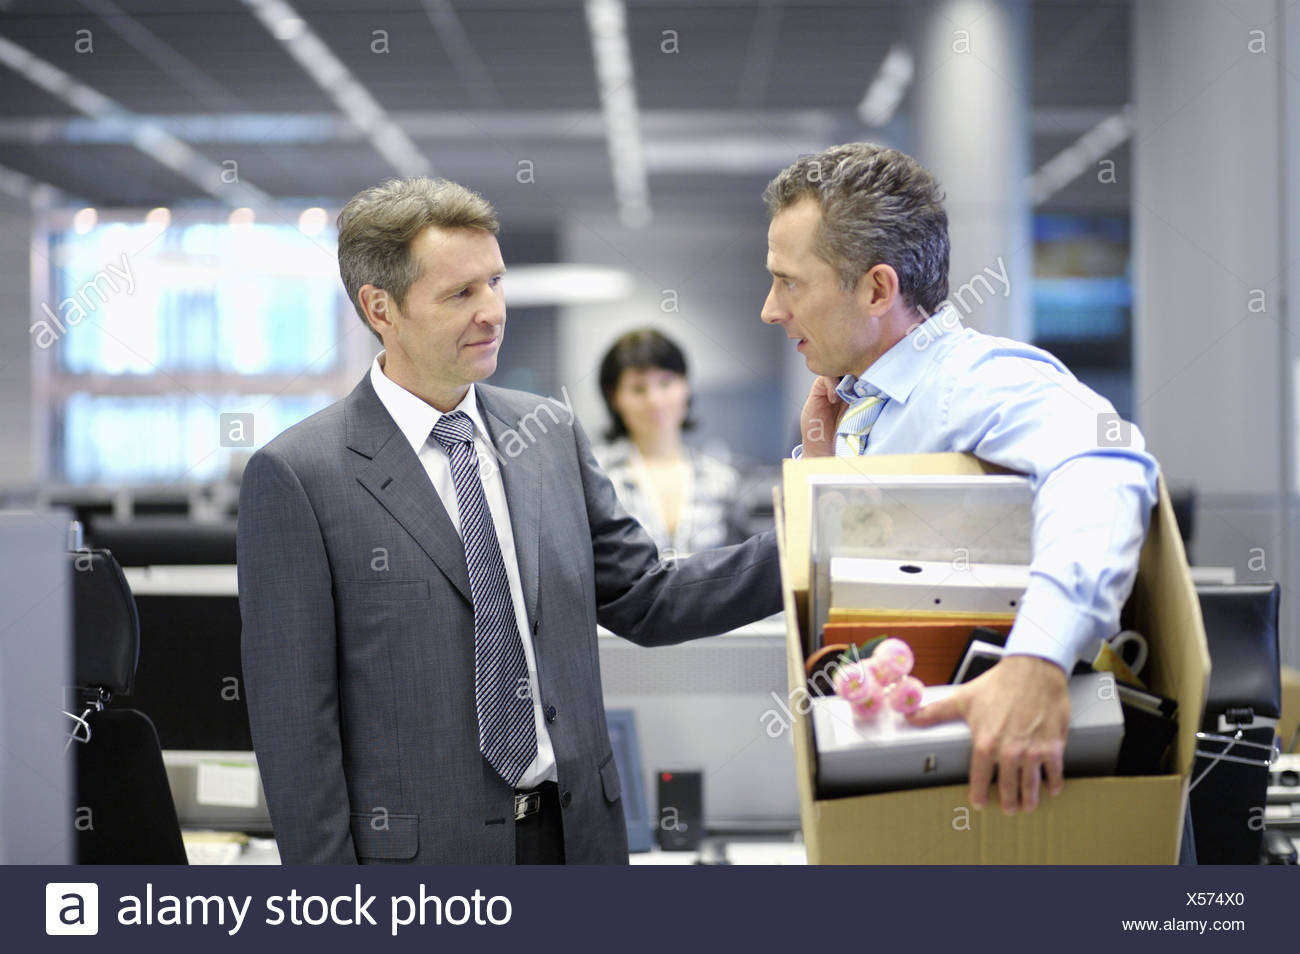 Businessman leaving office with box of personal items - Stock Image